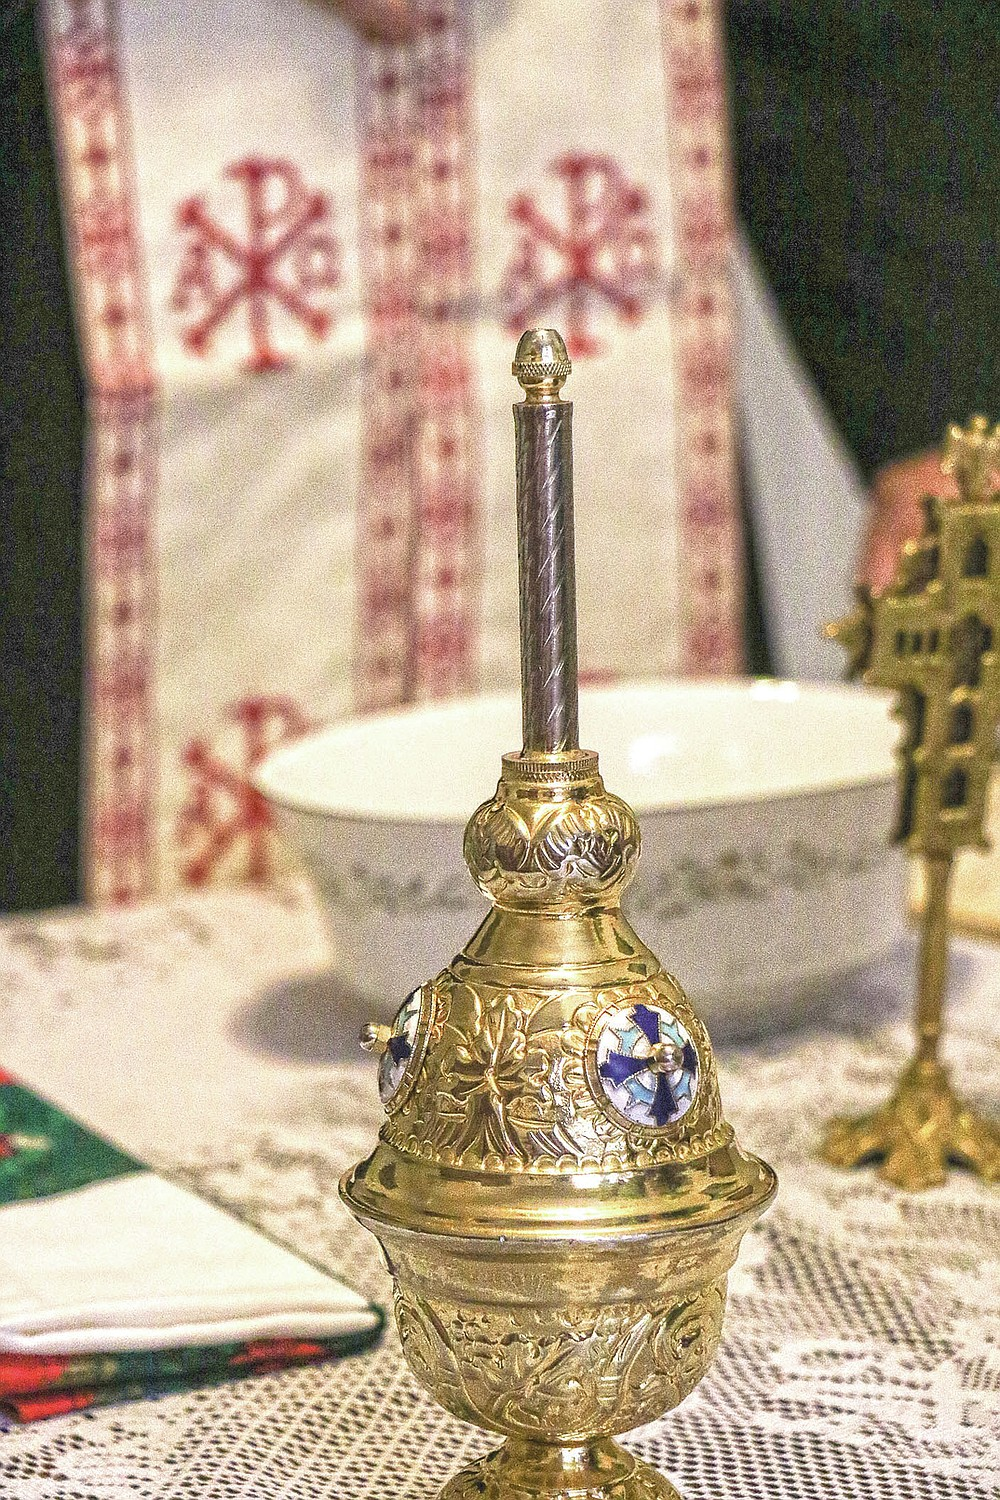 A vessel containing holy water blessed Father Mark Elliott, of St. George Greek Orthodox Church on epiphany sits waiting to be used at a house blessing at Kathleen Chamis' residence Tuesday, March 9, 2021 in Ashland, Ky. After more than a year of fighting an ongoing pandemic, most are ready for a cleansing and Father Mark Elliott of St. George Greek Orthodox Church in Huntington is trying to bring them some peace. (Matt Jones/The Daily Independent via AP)